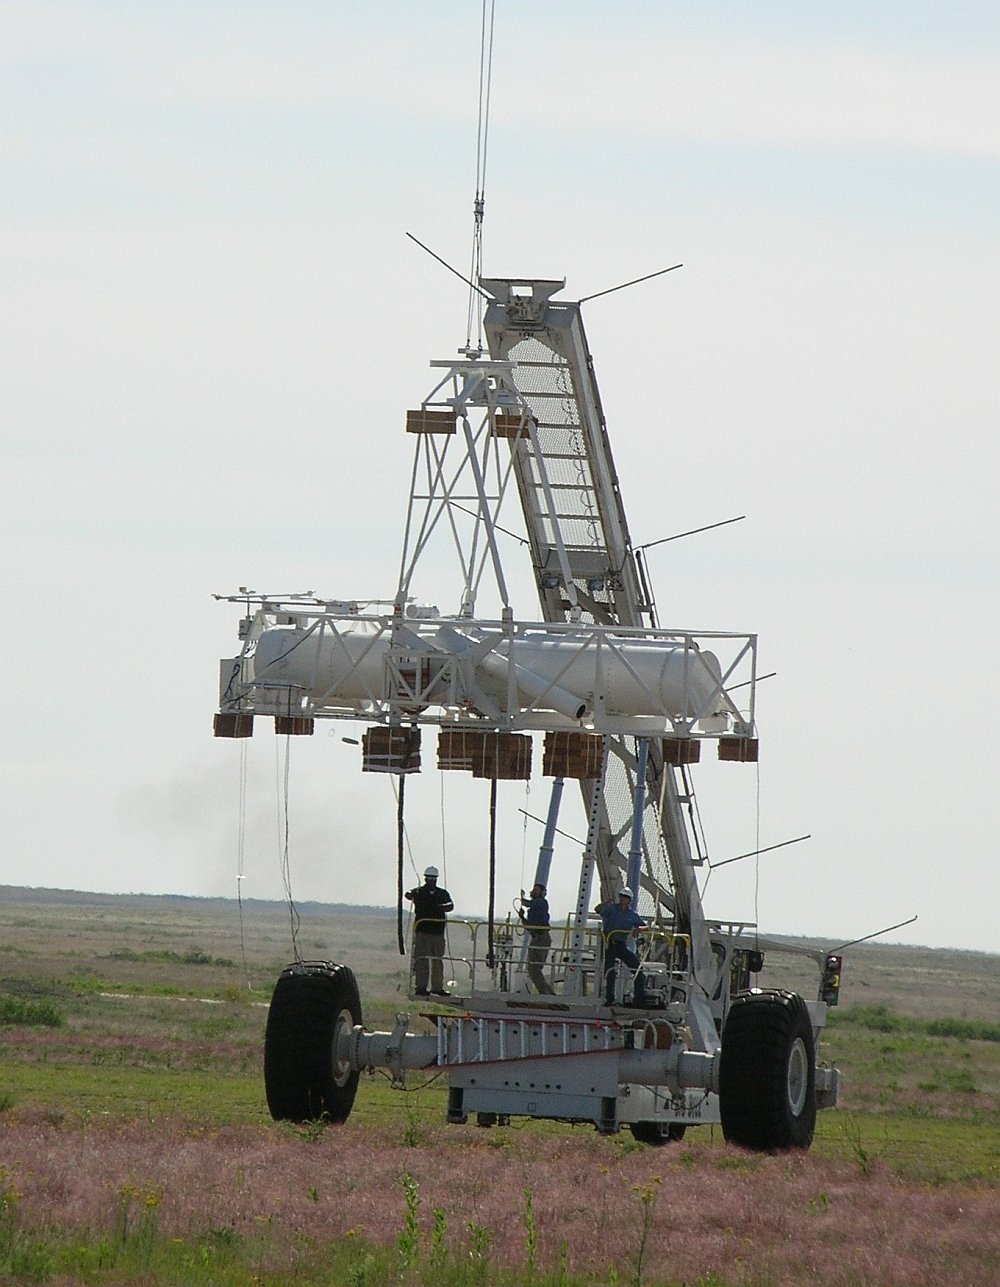 The HERO telescope just before being released by the launch vehicle